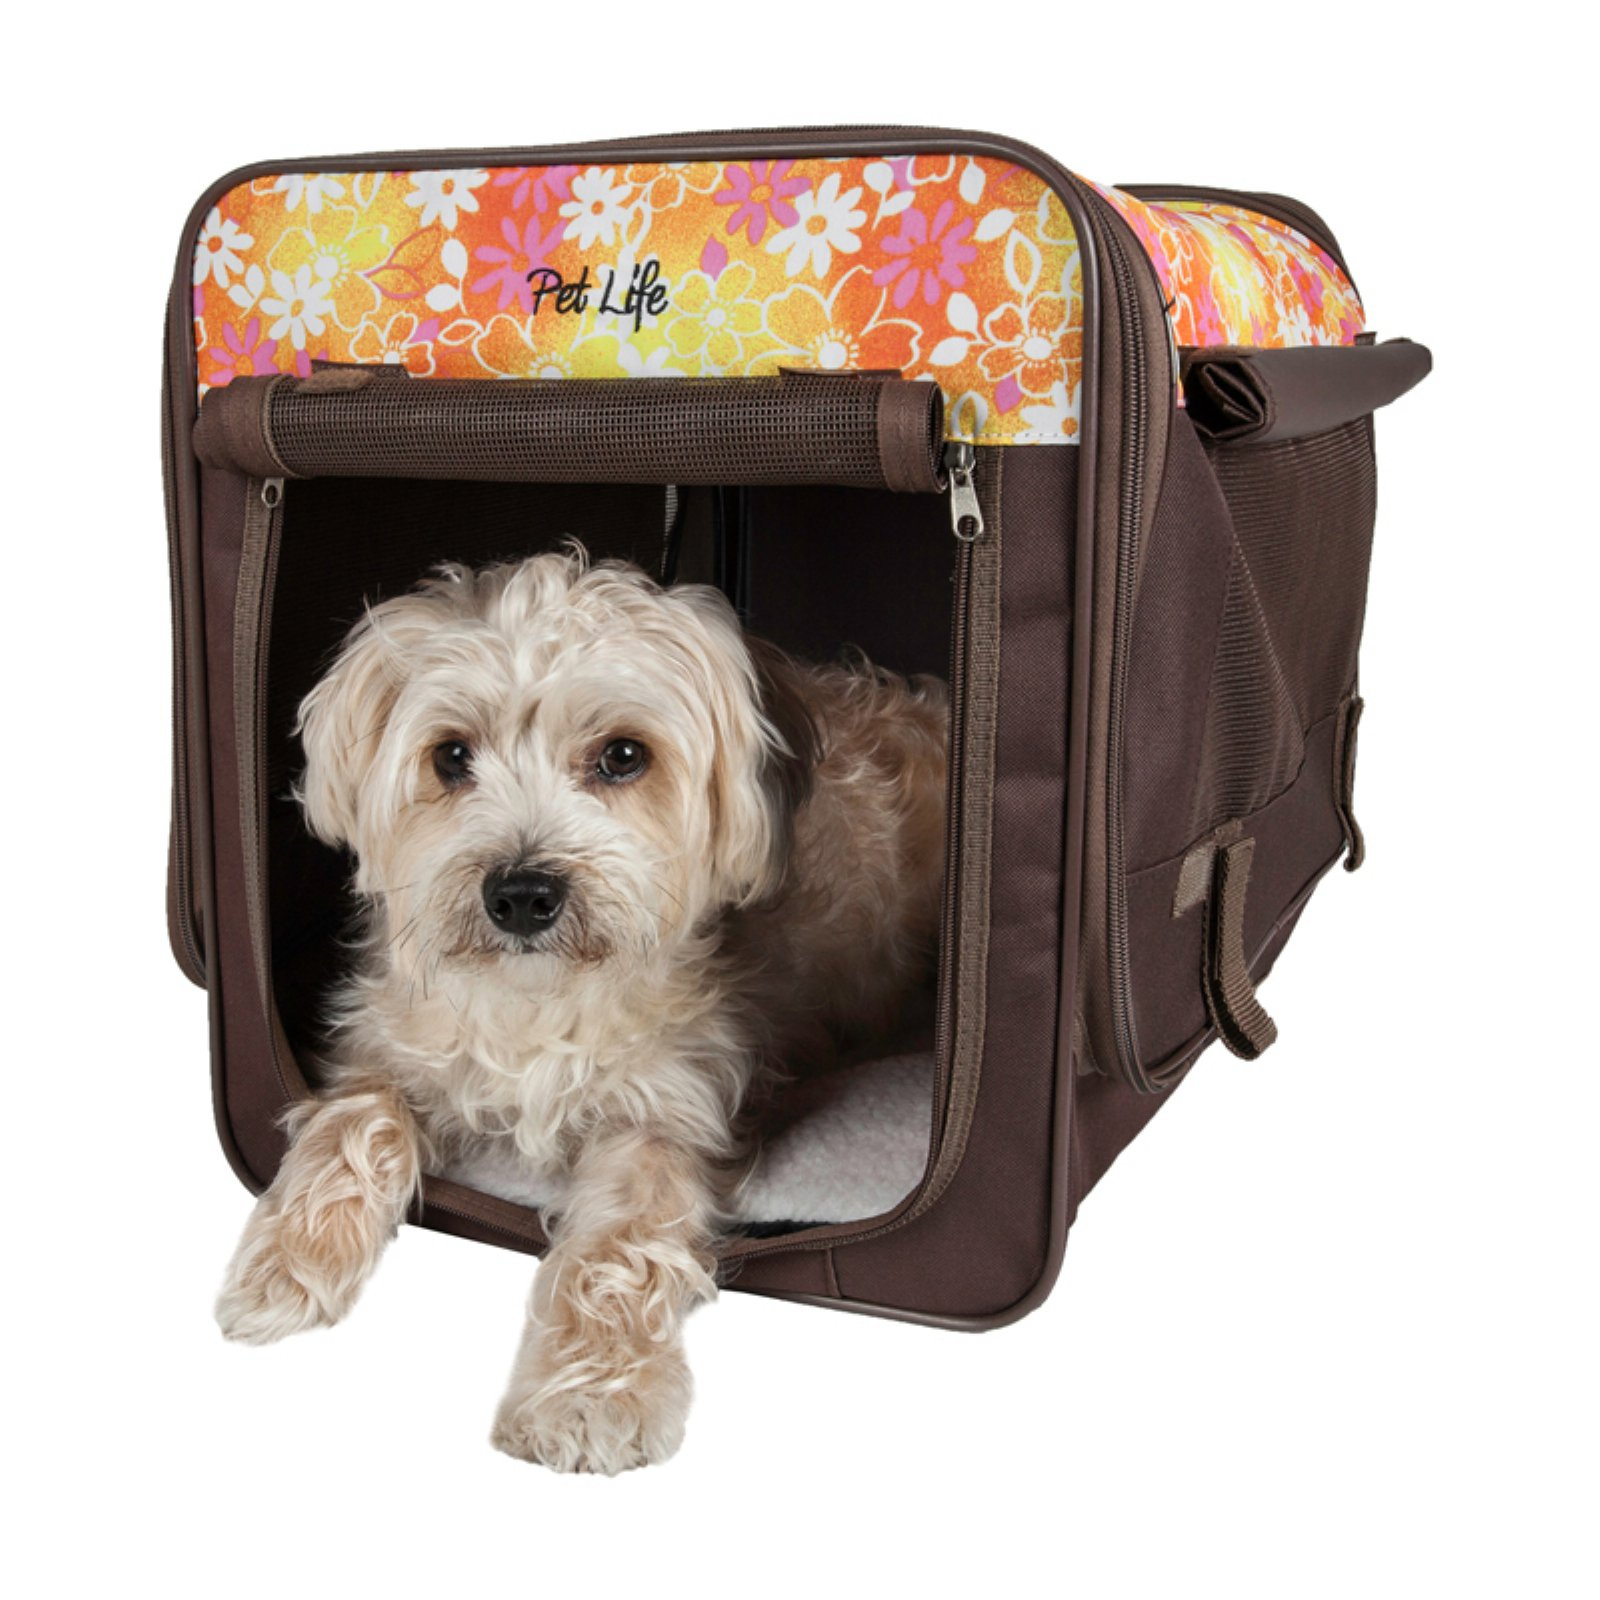 Pet Life Floral Folding Collapsible Lightweight Wire Framed Tent Pet Crate